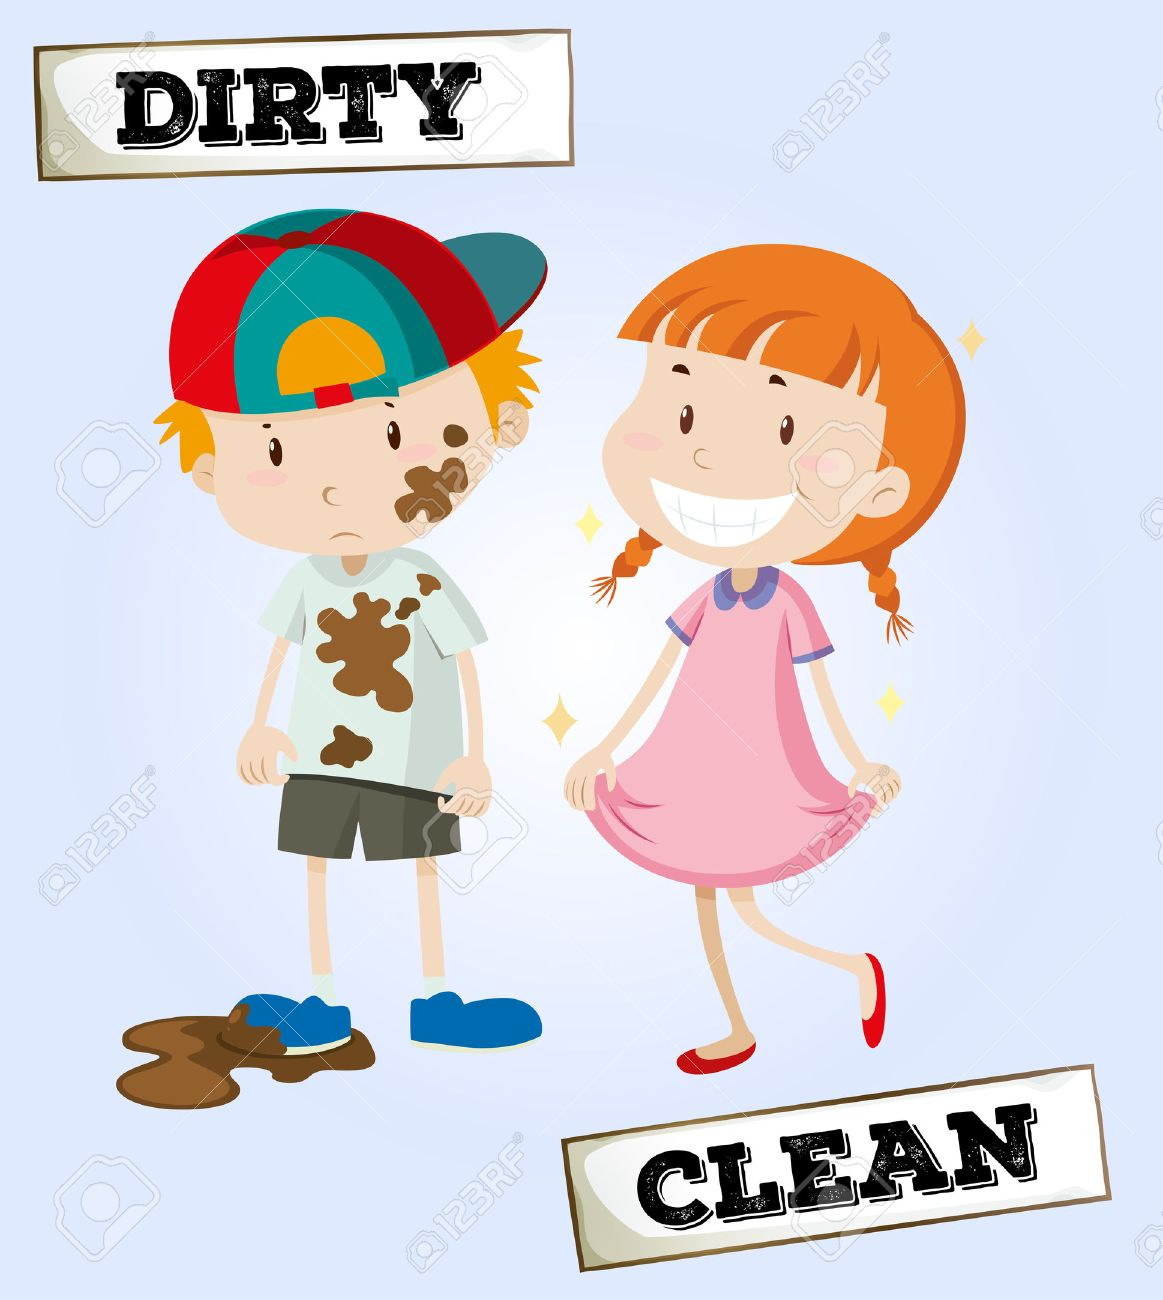 Clean And Dirty Child Clipart.